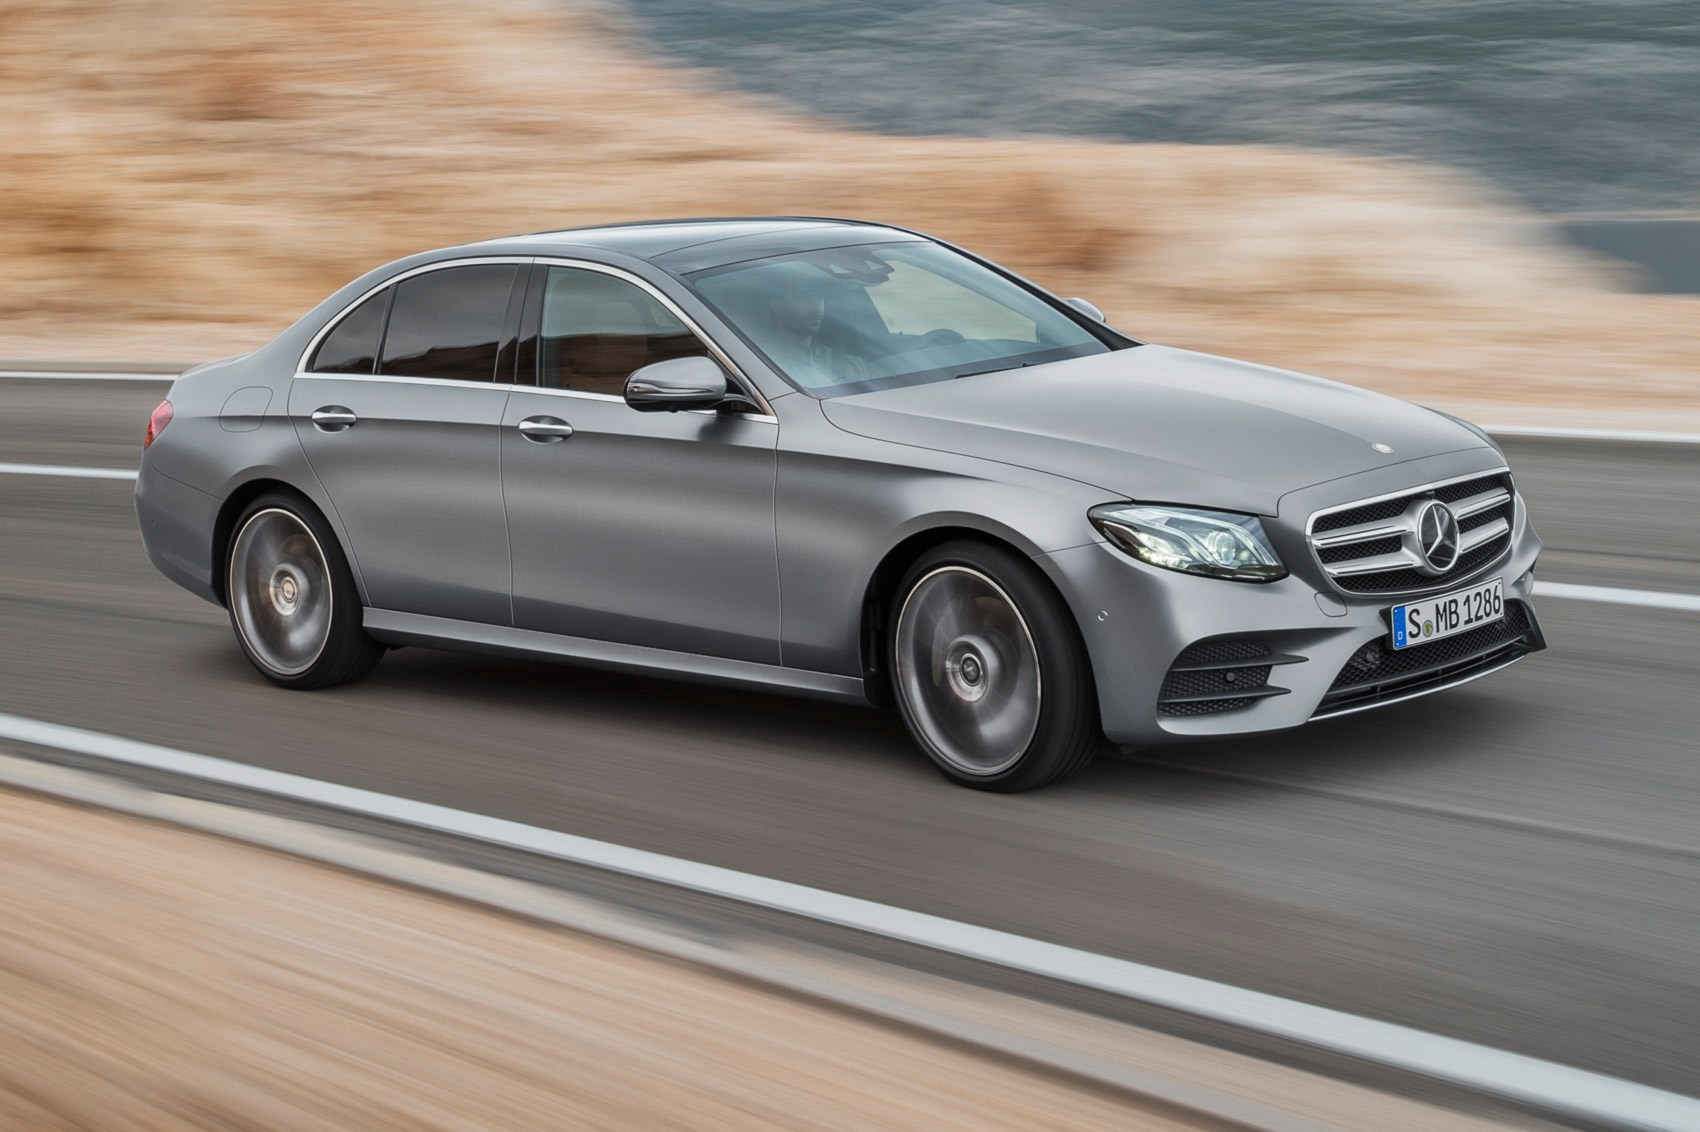 New mercedes benz e class on sale for 35 935 by car magazine for Mercedes benz news